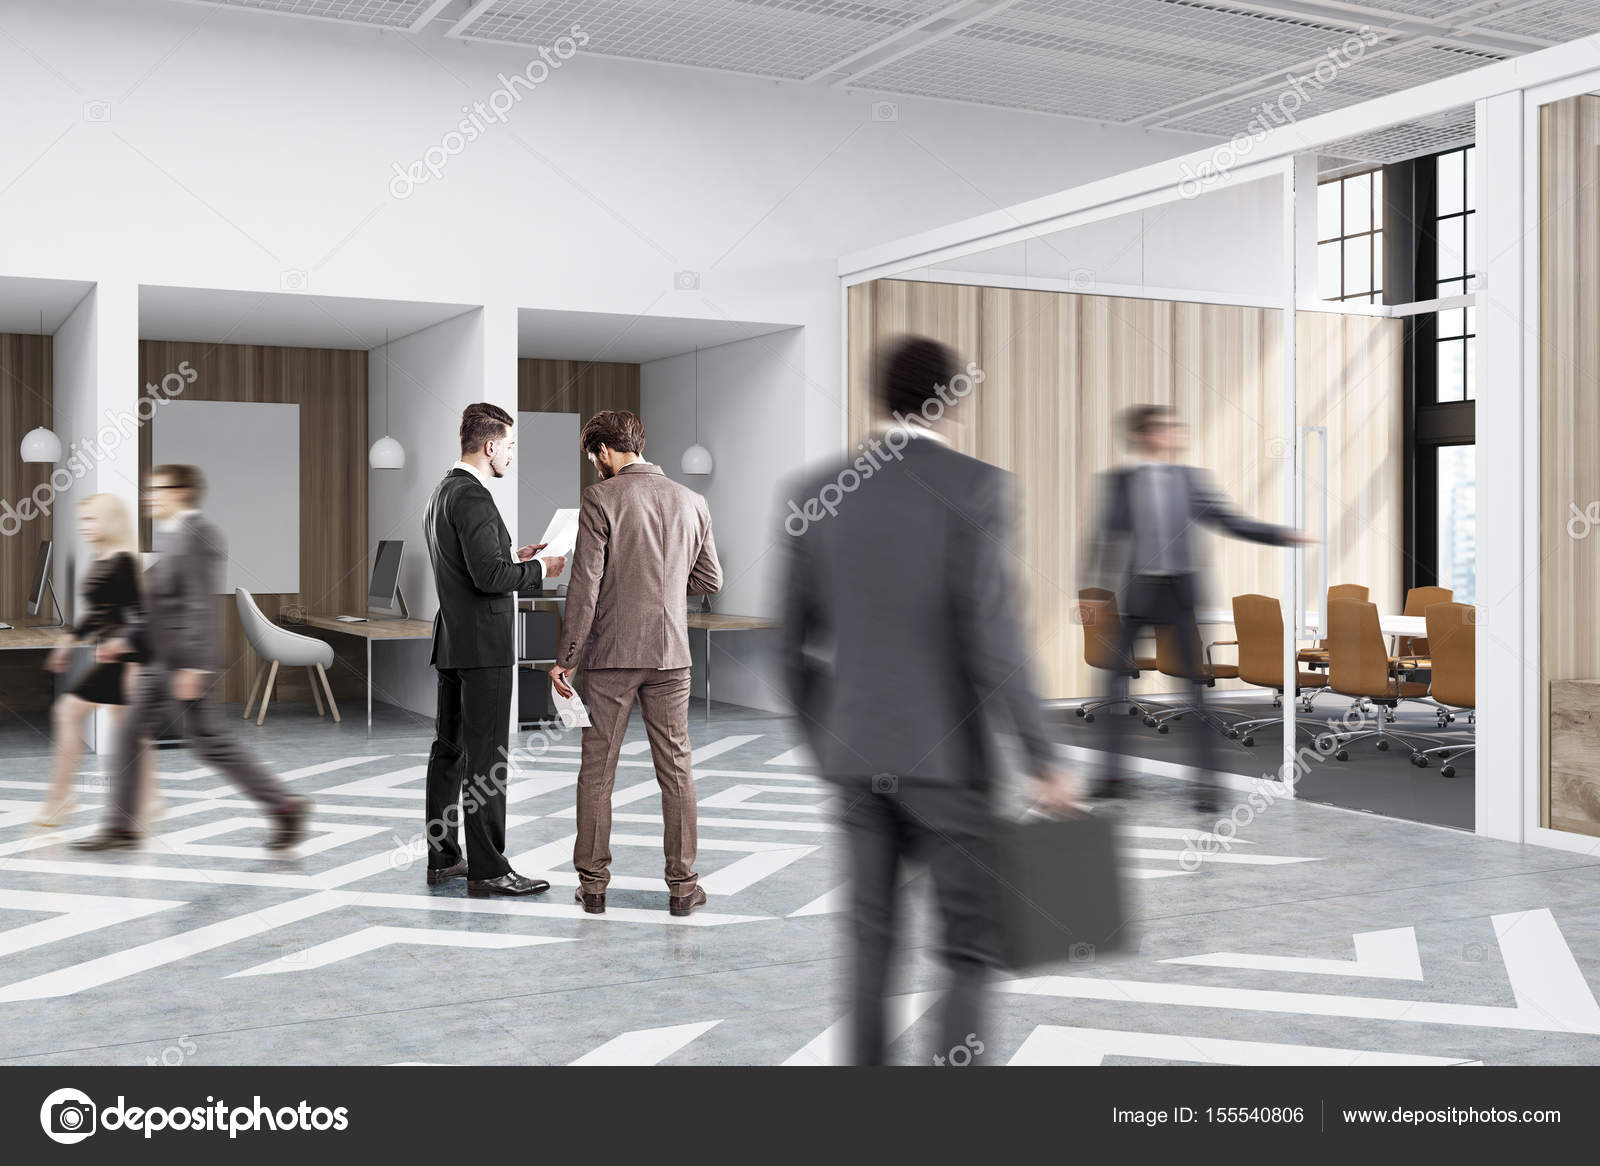 People Near Office Cubicles In An With White And Wooden Walls There Are Blank Vertical Pictures Each Of Them A Desk Computer